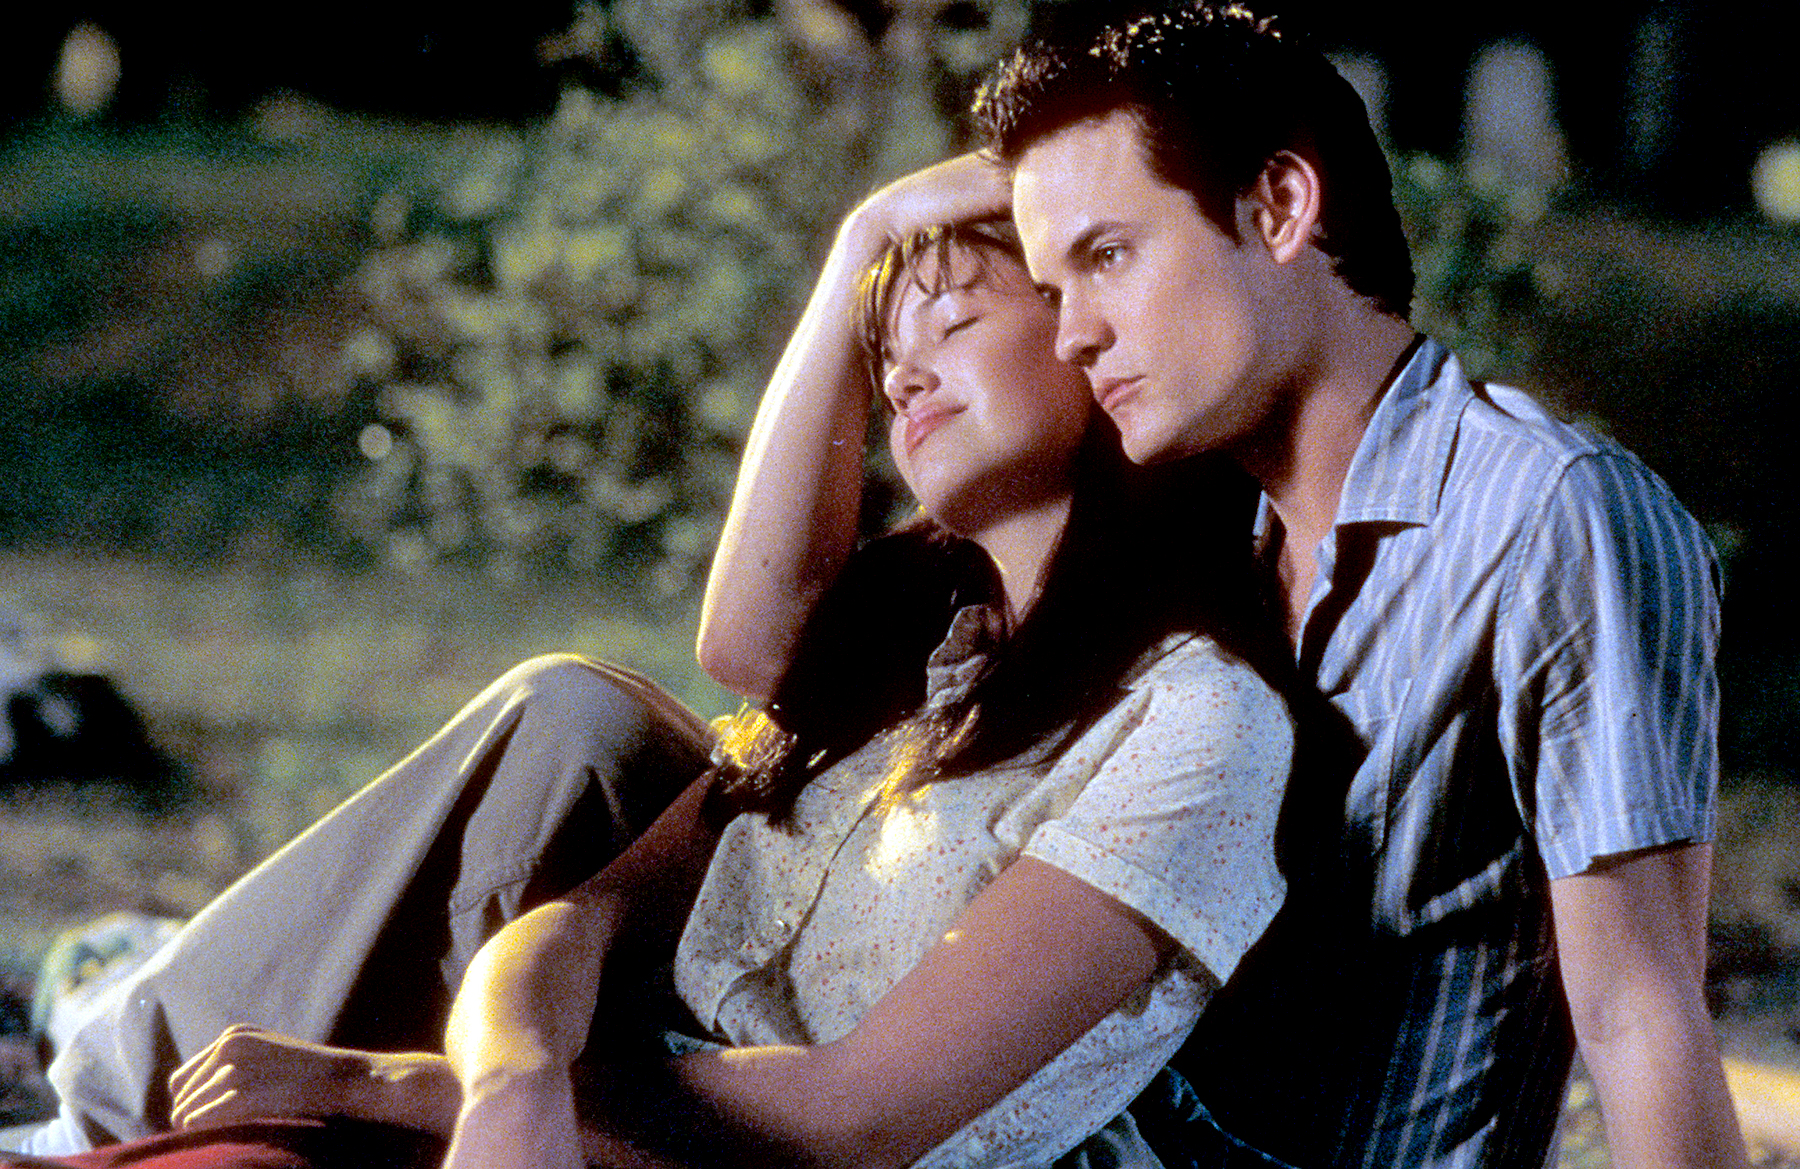 Mandy Moore Hasn't Watched 'A Walk to Remember' in 10 Years